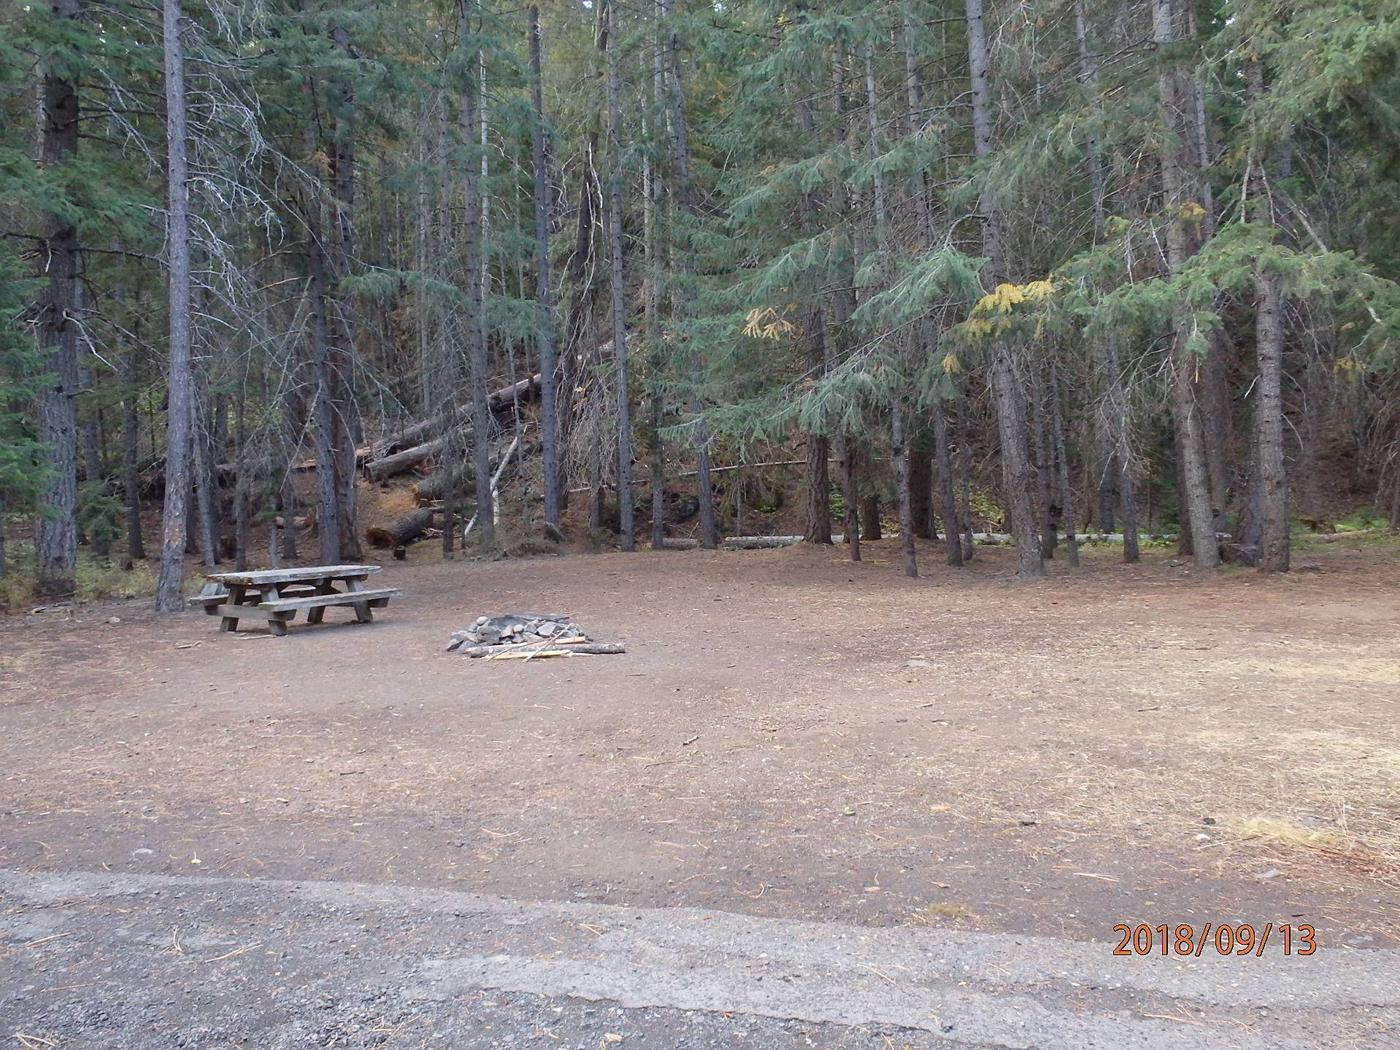 Kaner FlatOpen site offers room for tents and a pull thru loop for camp trailers